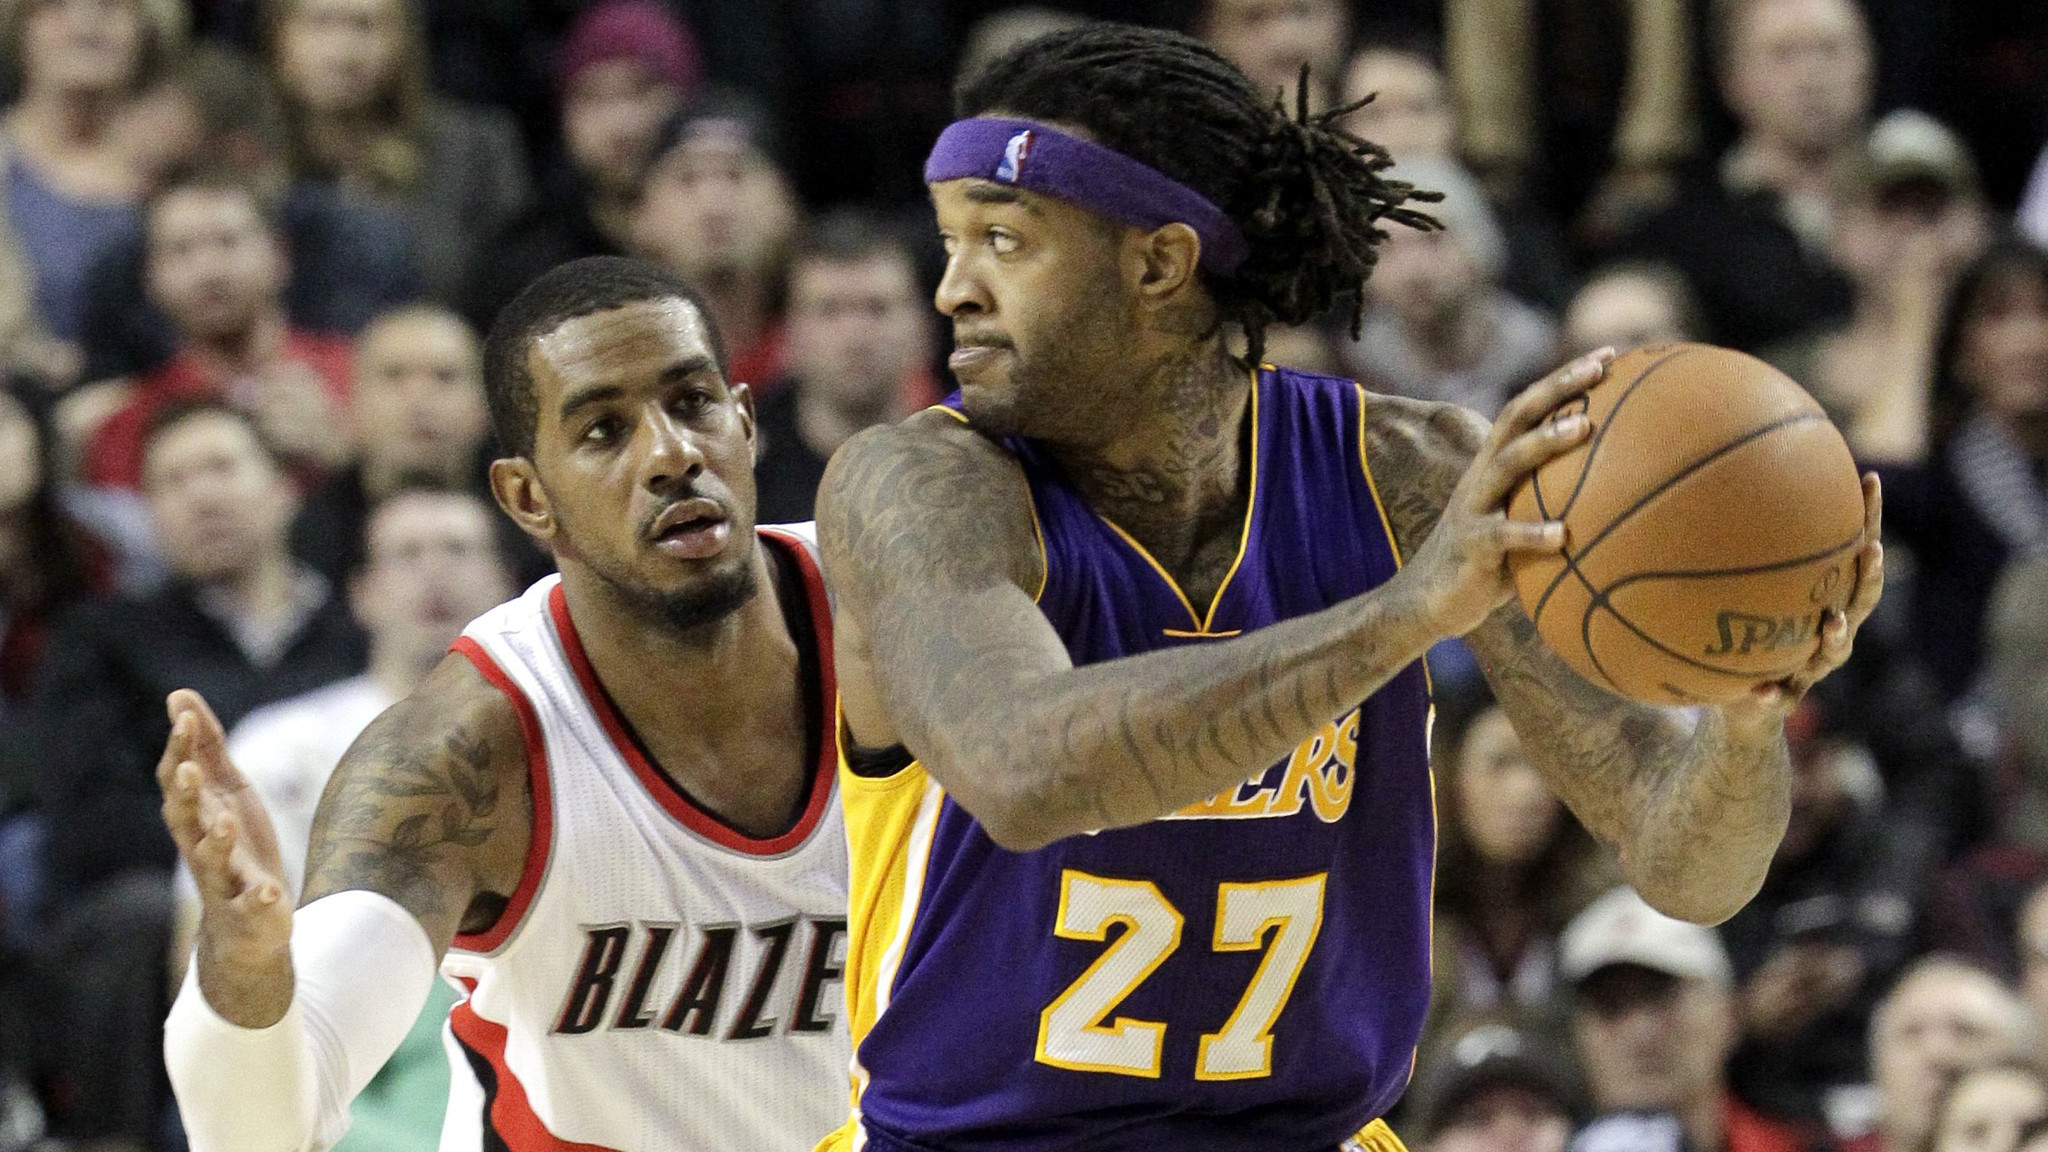 Lakers vs. Portland Trail Blazers preview - LA Times